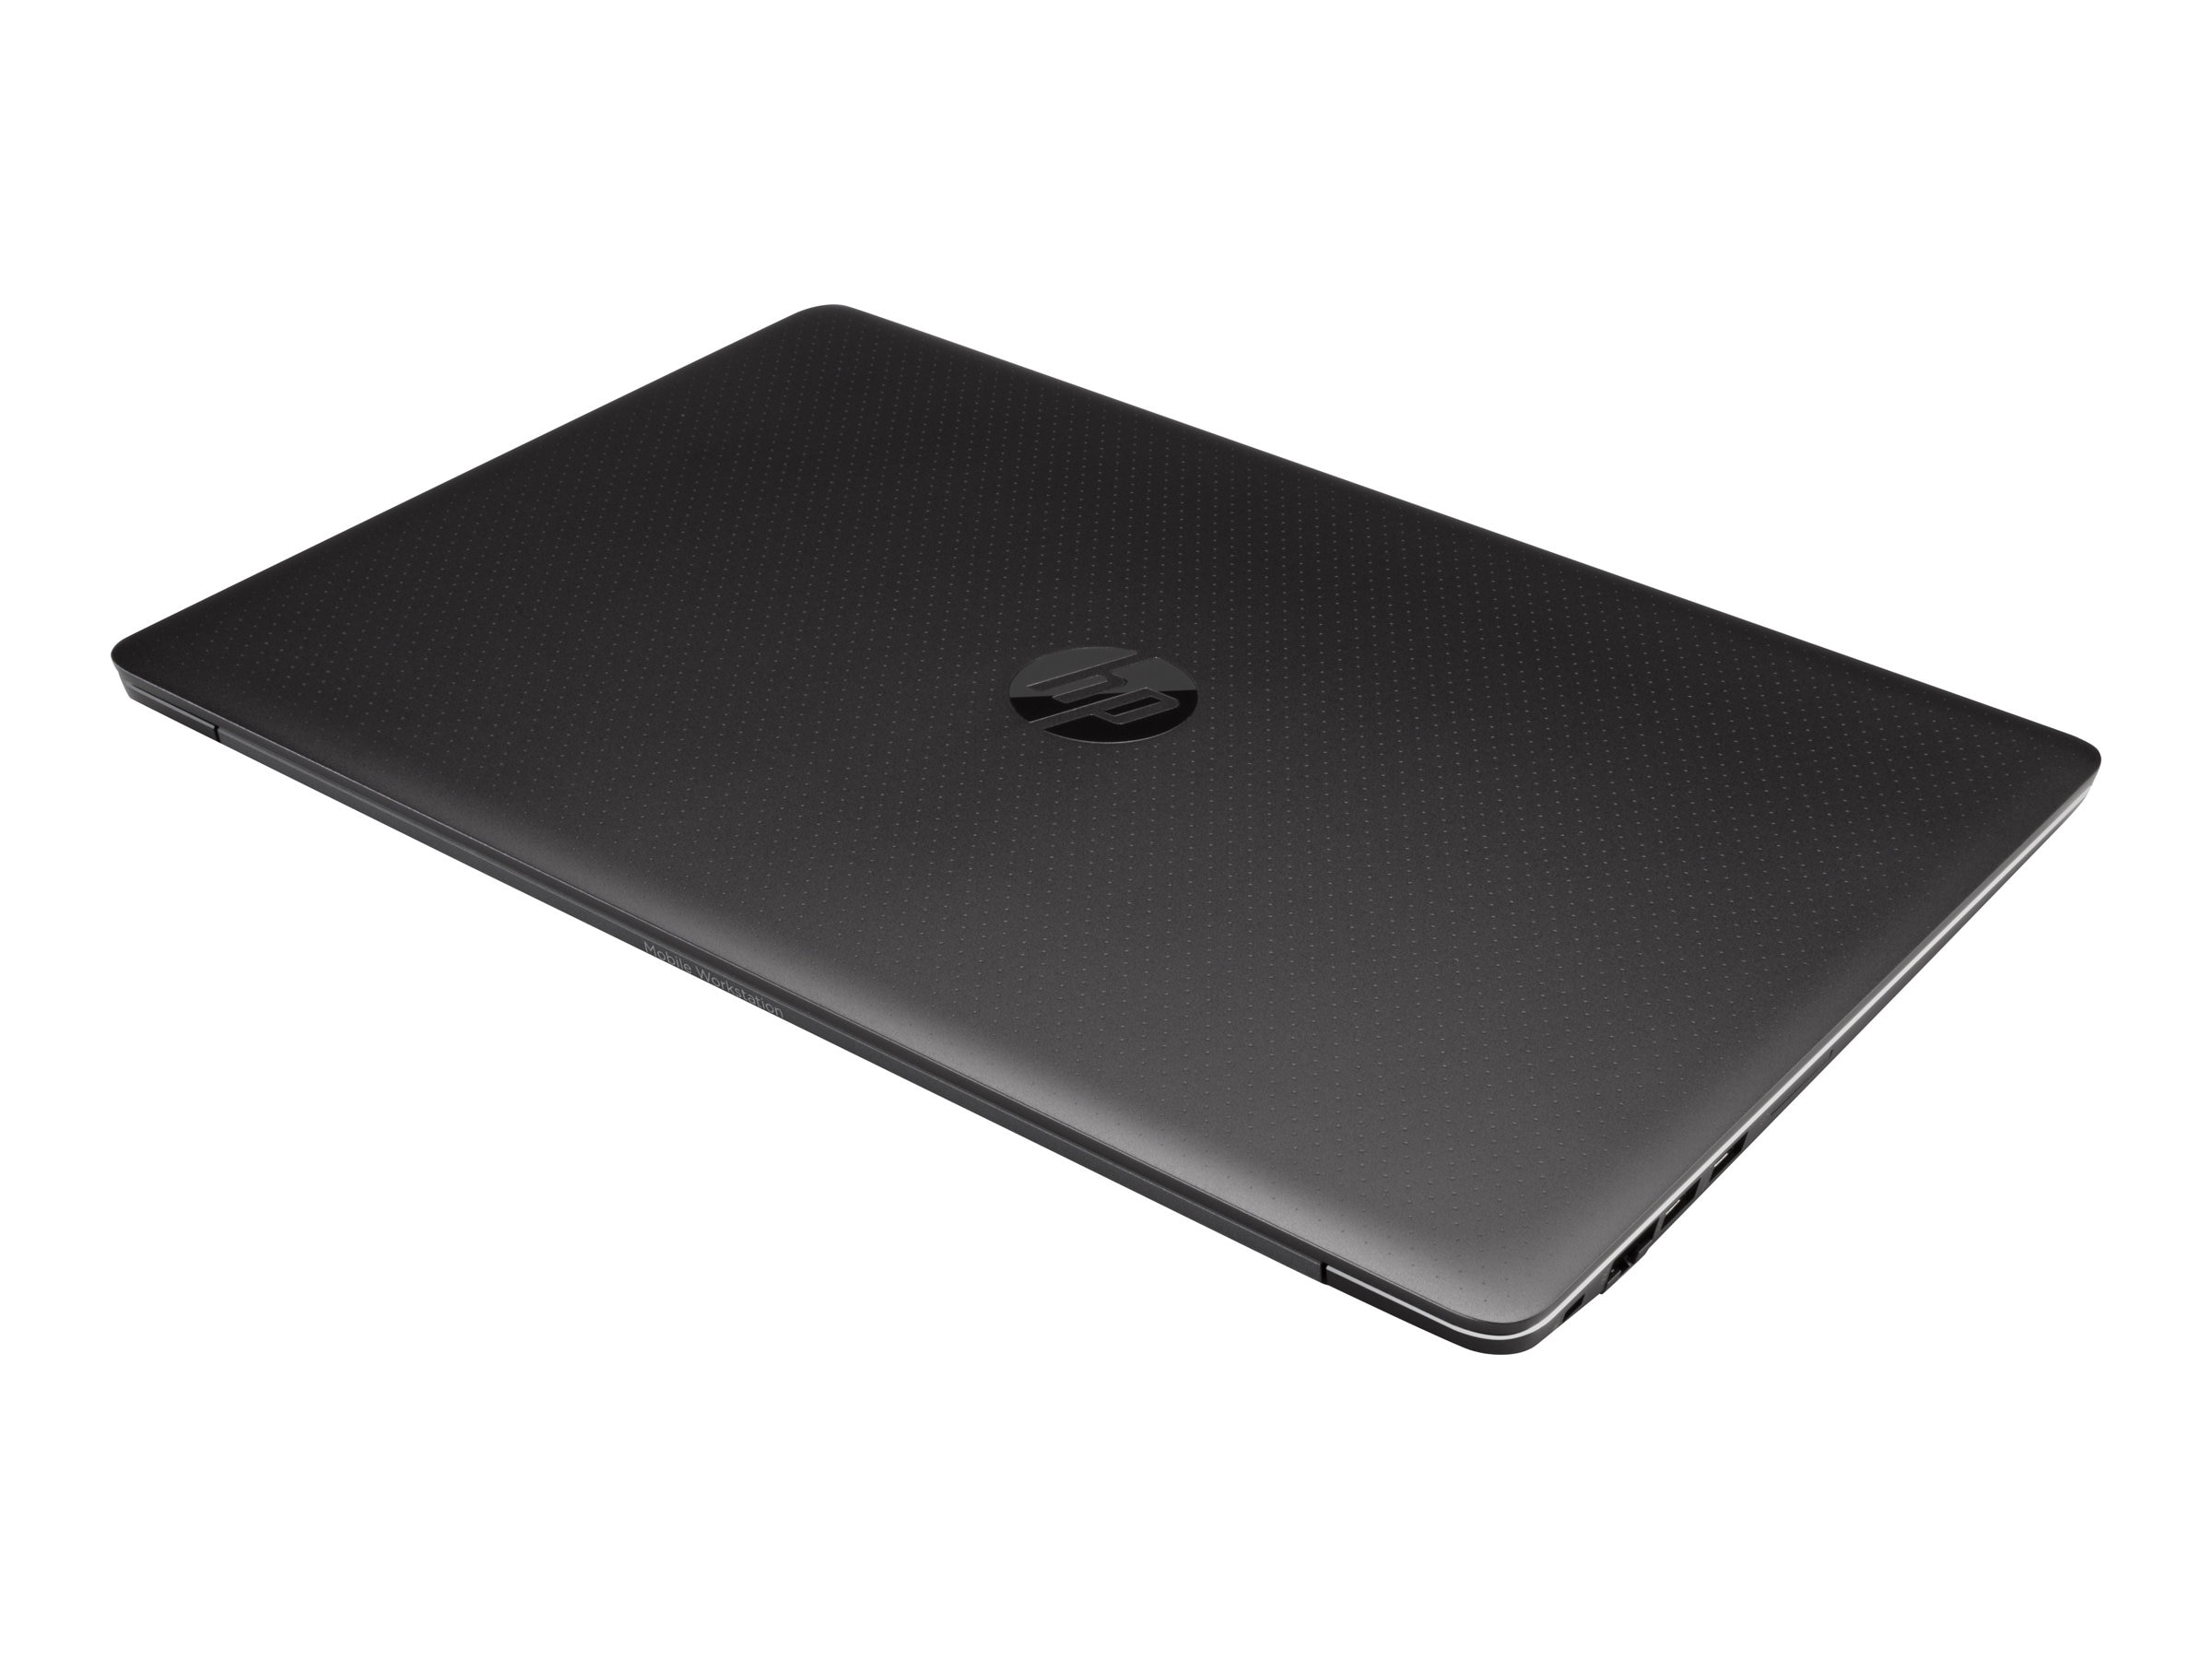 HP ZBook Studio G3 2.7GHz Core i7 15.6in display